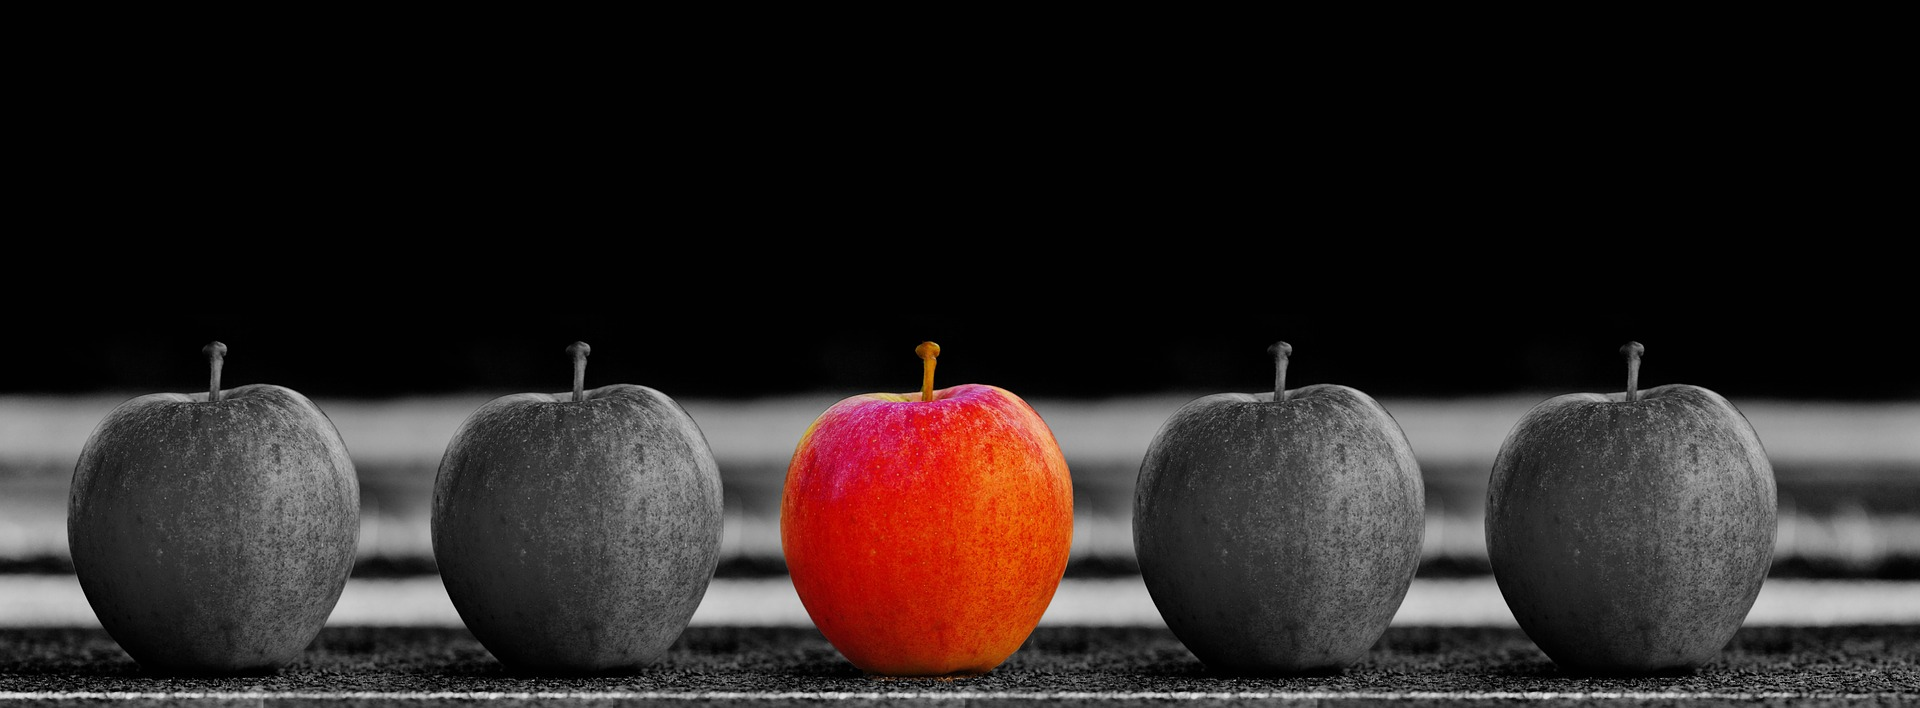 How To Get The Most from Advertising on Facebook - apples in a row